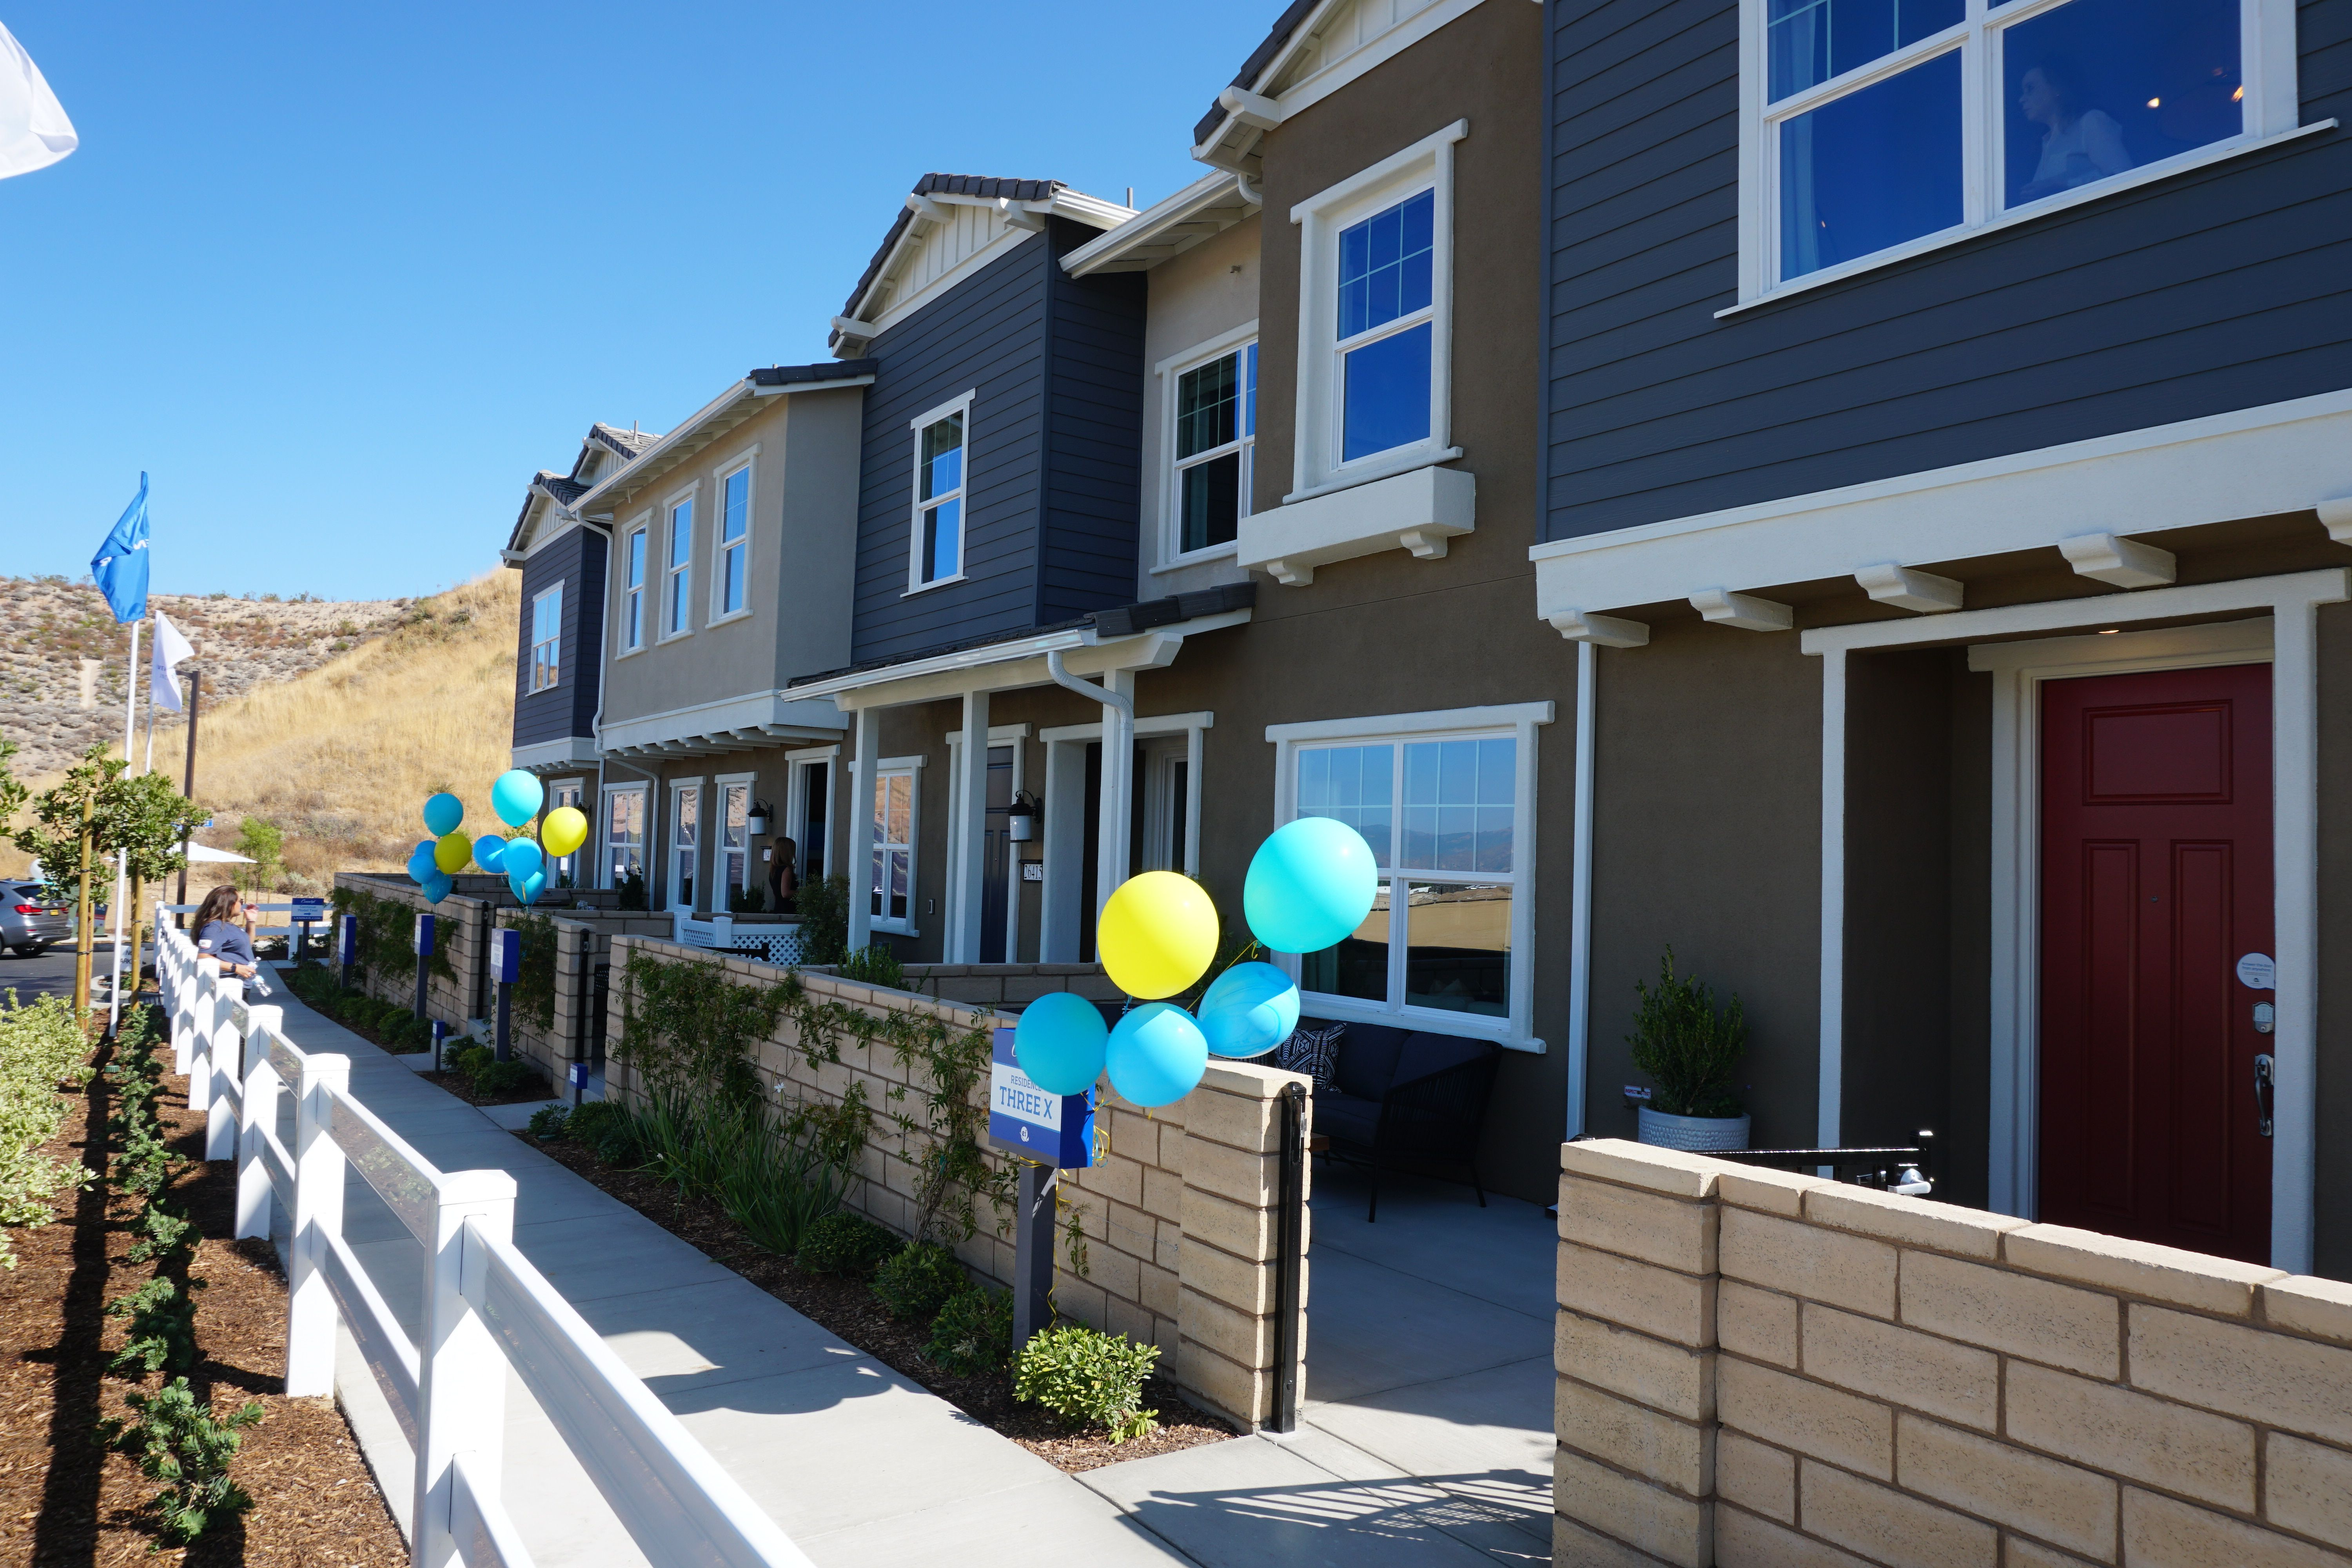 New Townhomes In Valencia At Concord At River Village New Home Communities College Of The Canyons New Homes